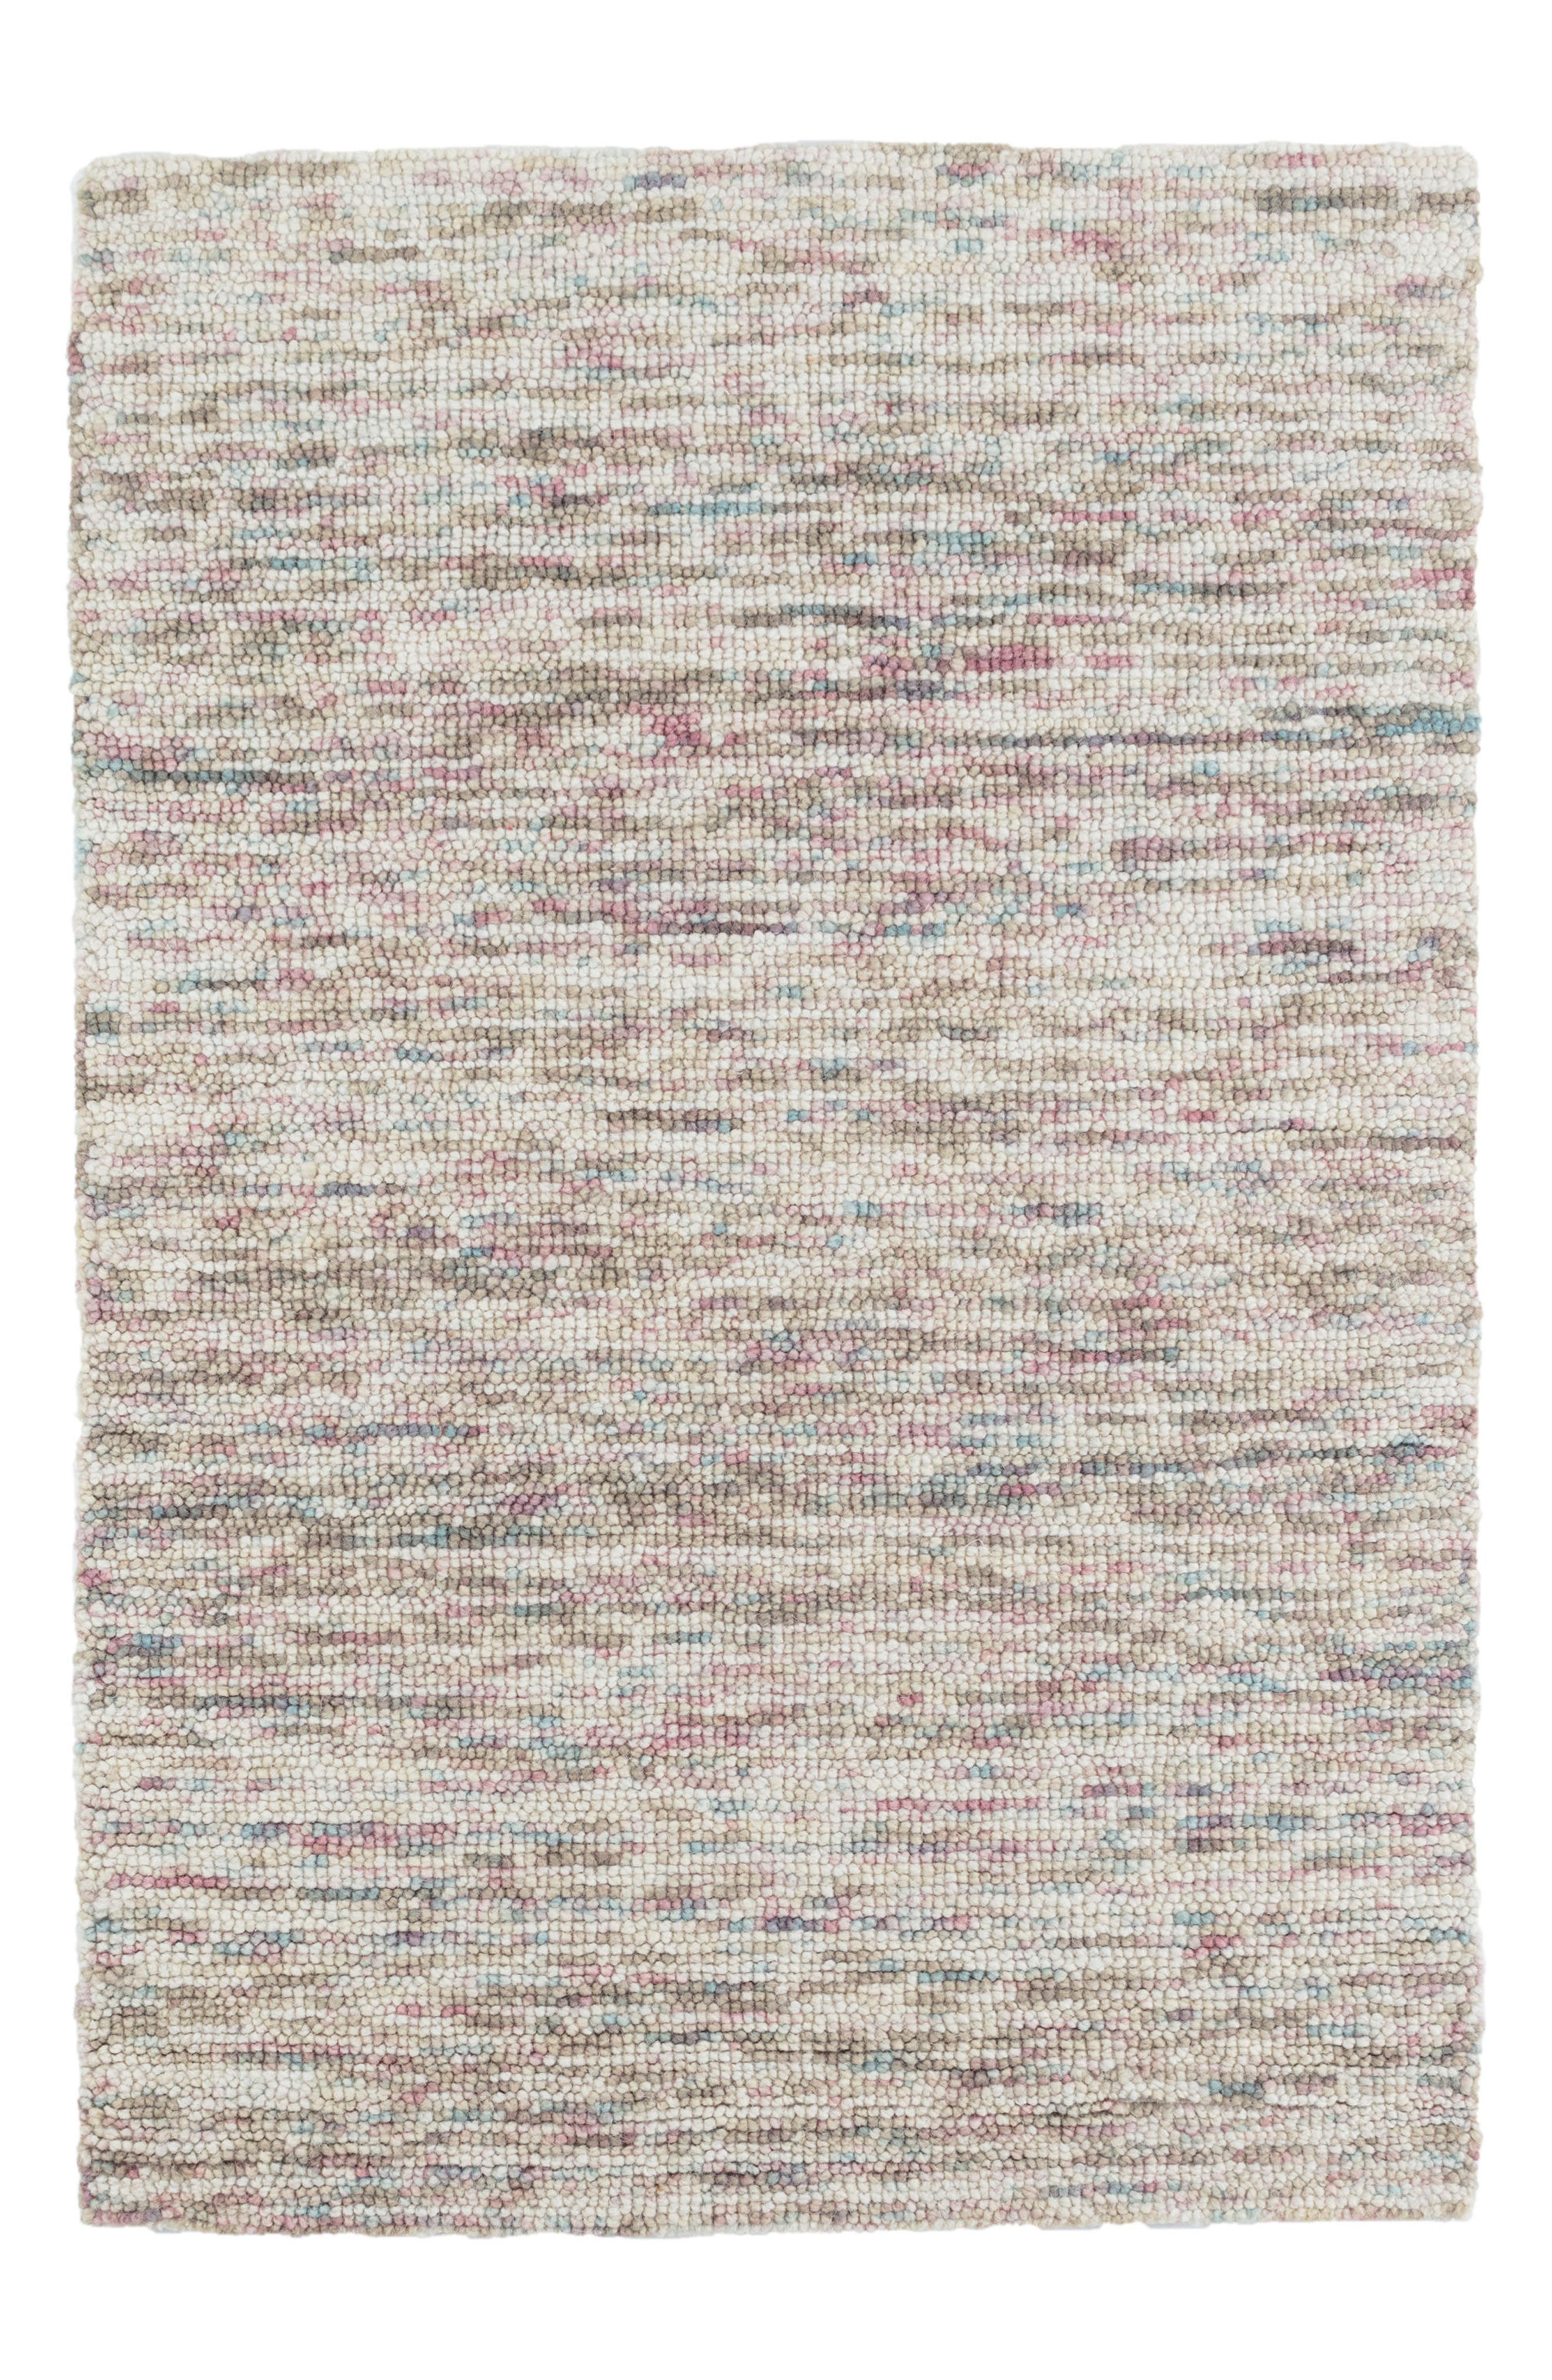 Artisanal Hooked Wool Rug,                         Main,                         color,